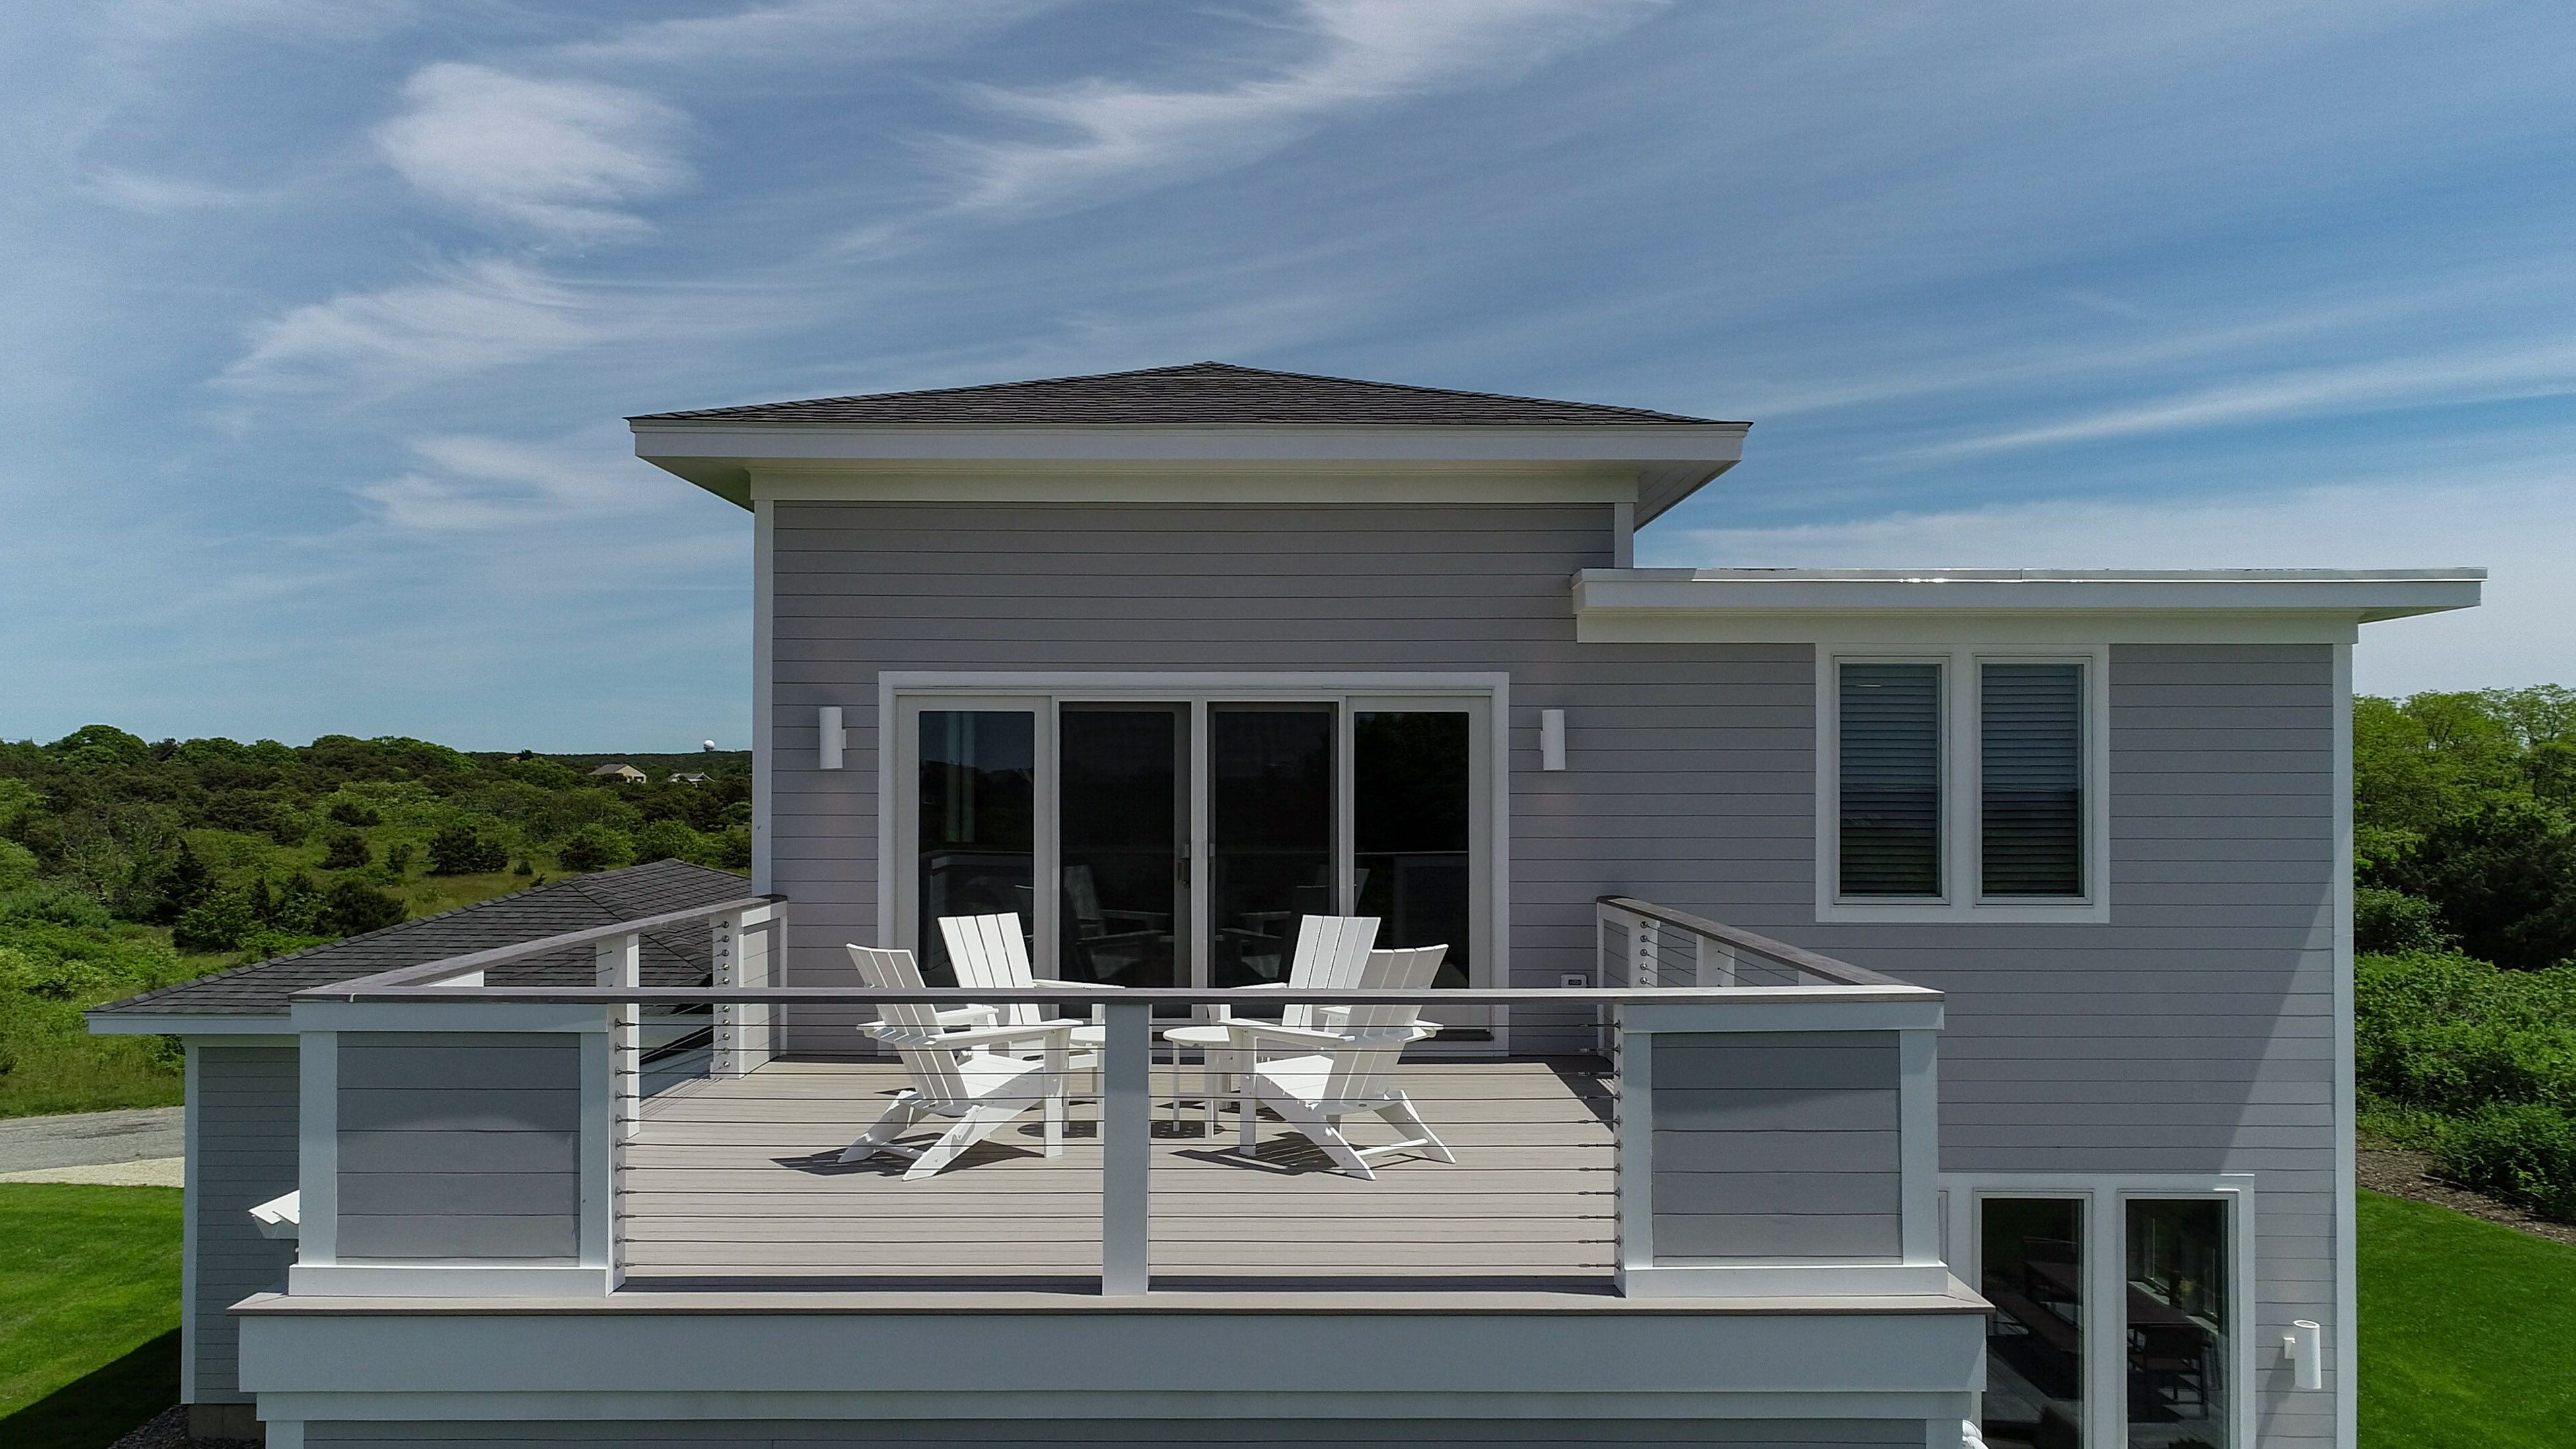 Roof Deck By Reef Builders Cape Cod Cape Cod Custom Homes Roof Deck